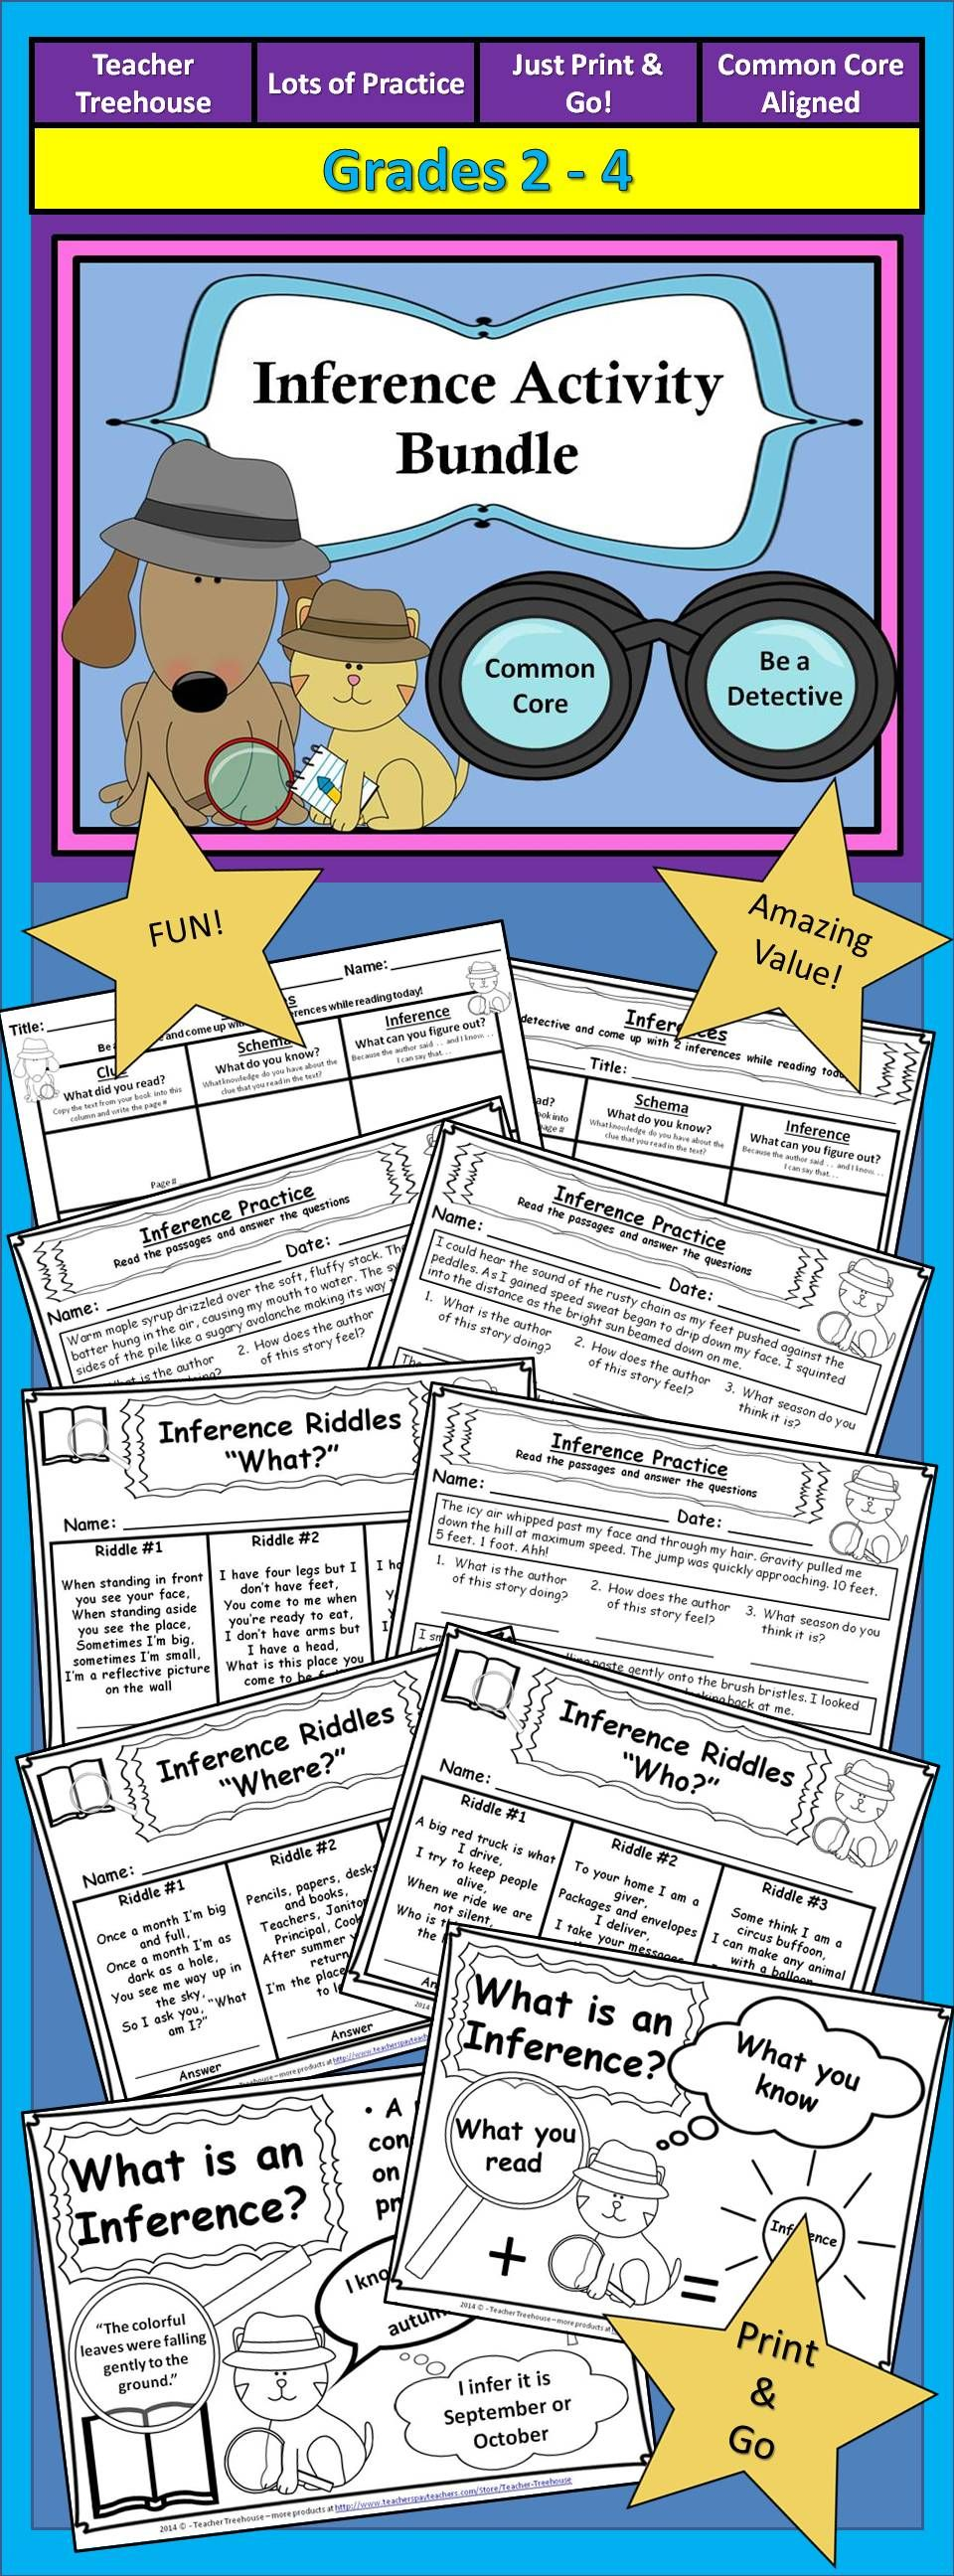 Inference Riddles Worksheets Inference Activity Bundle